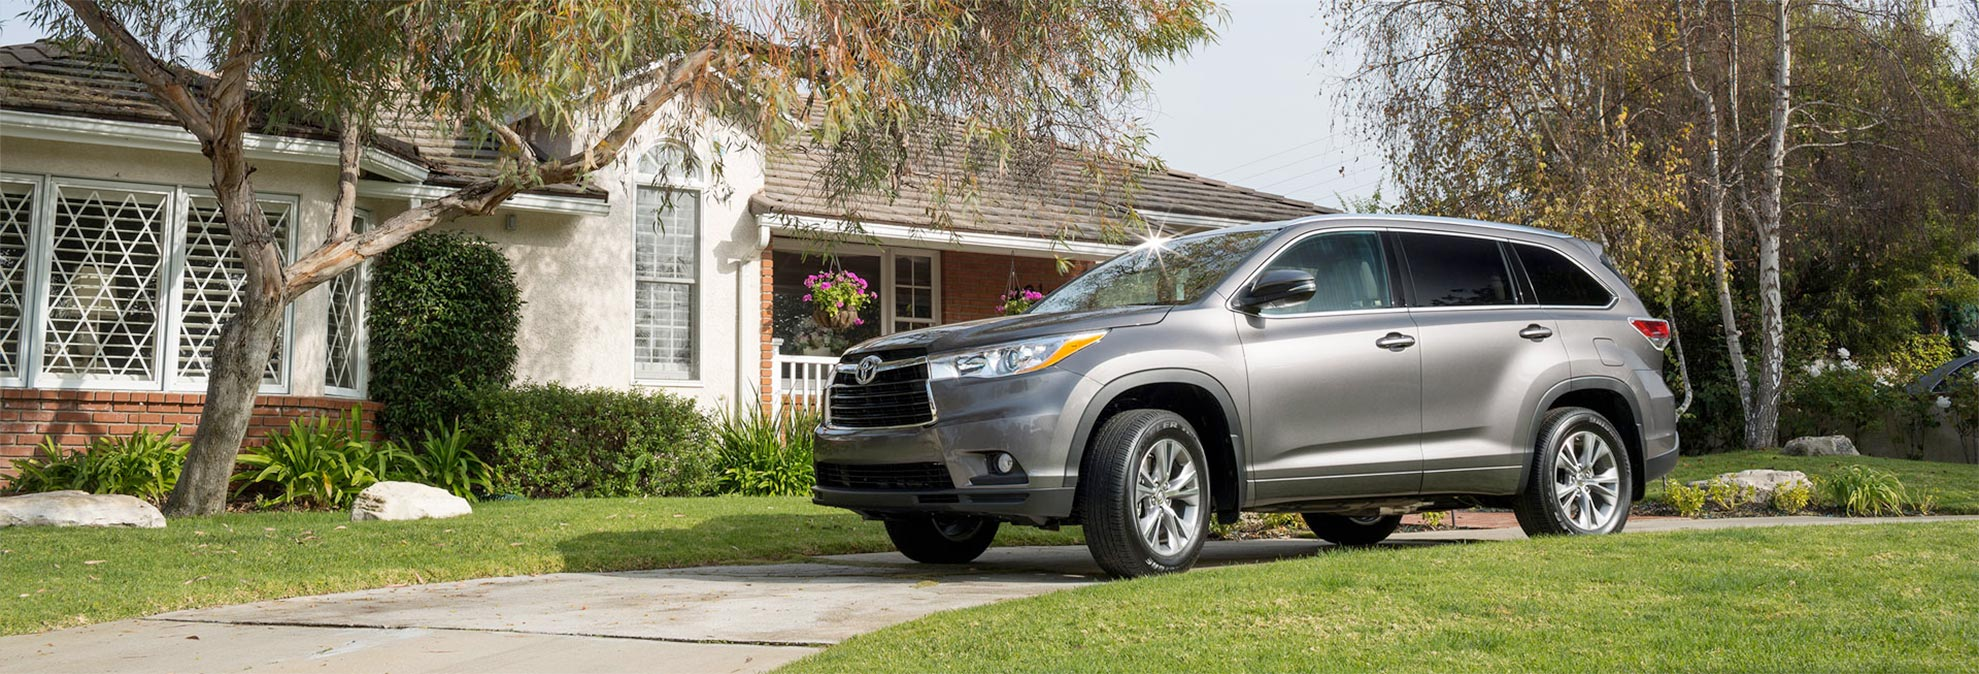 Honda pilot vs toyota highlander which is best for me for Honda crv vs toyota highlander